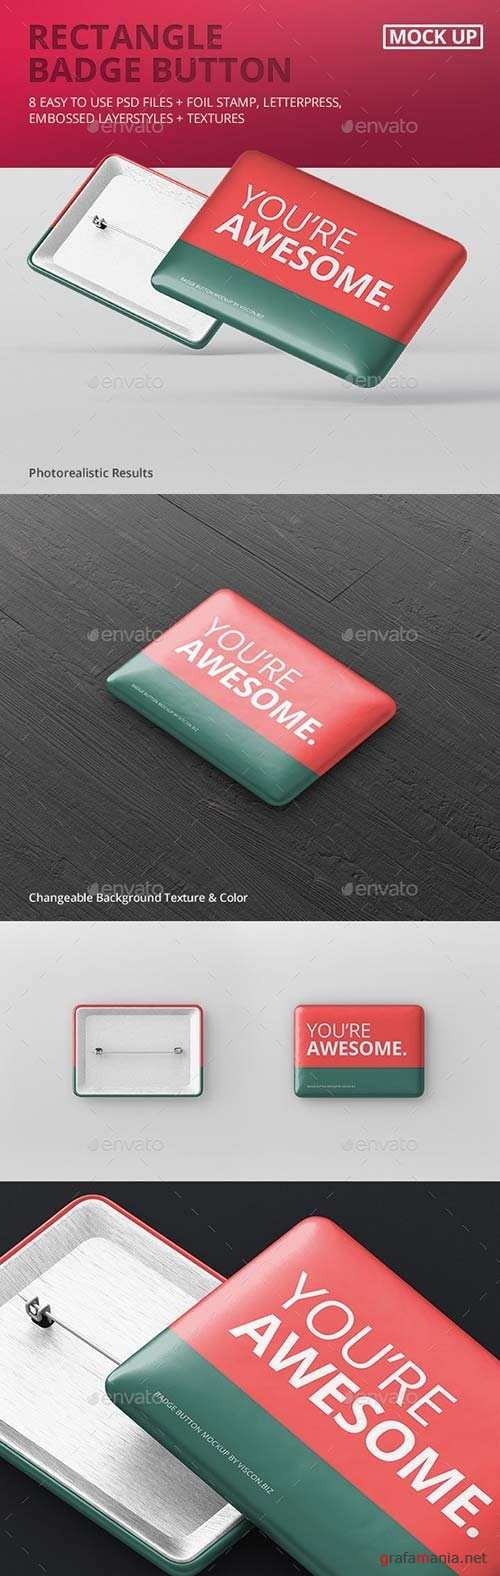 Rectangle Badge Button Mockup 19282126